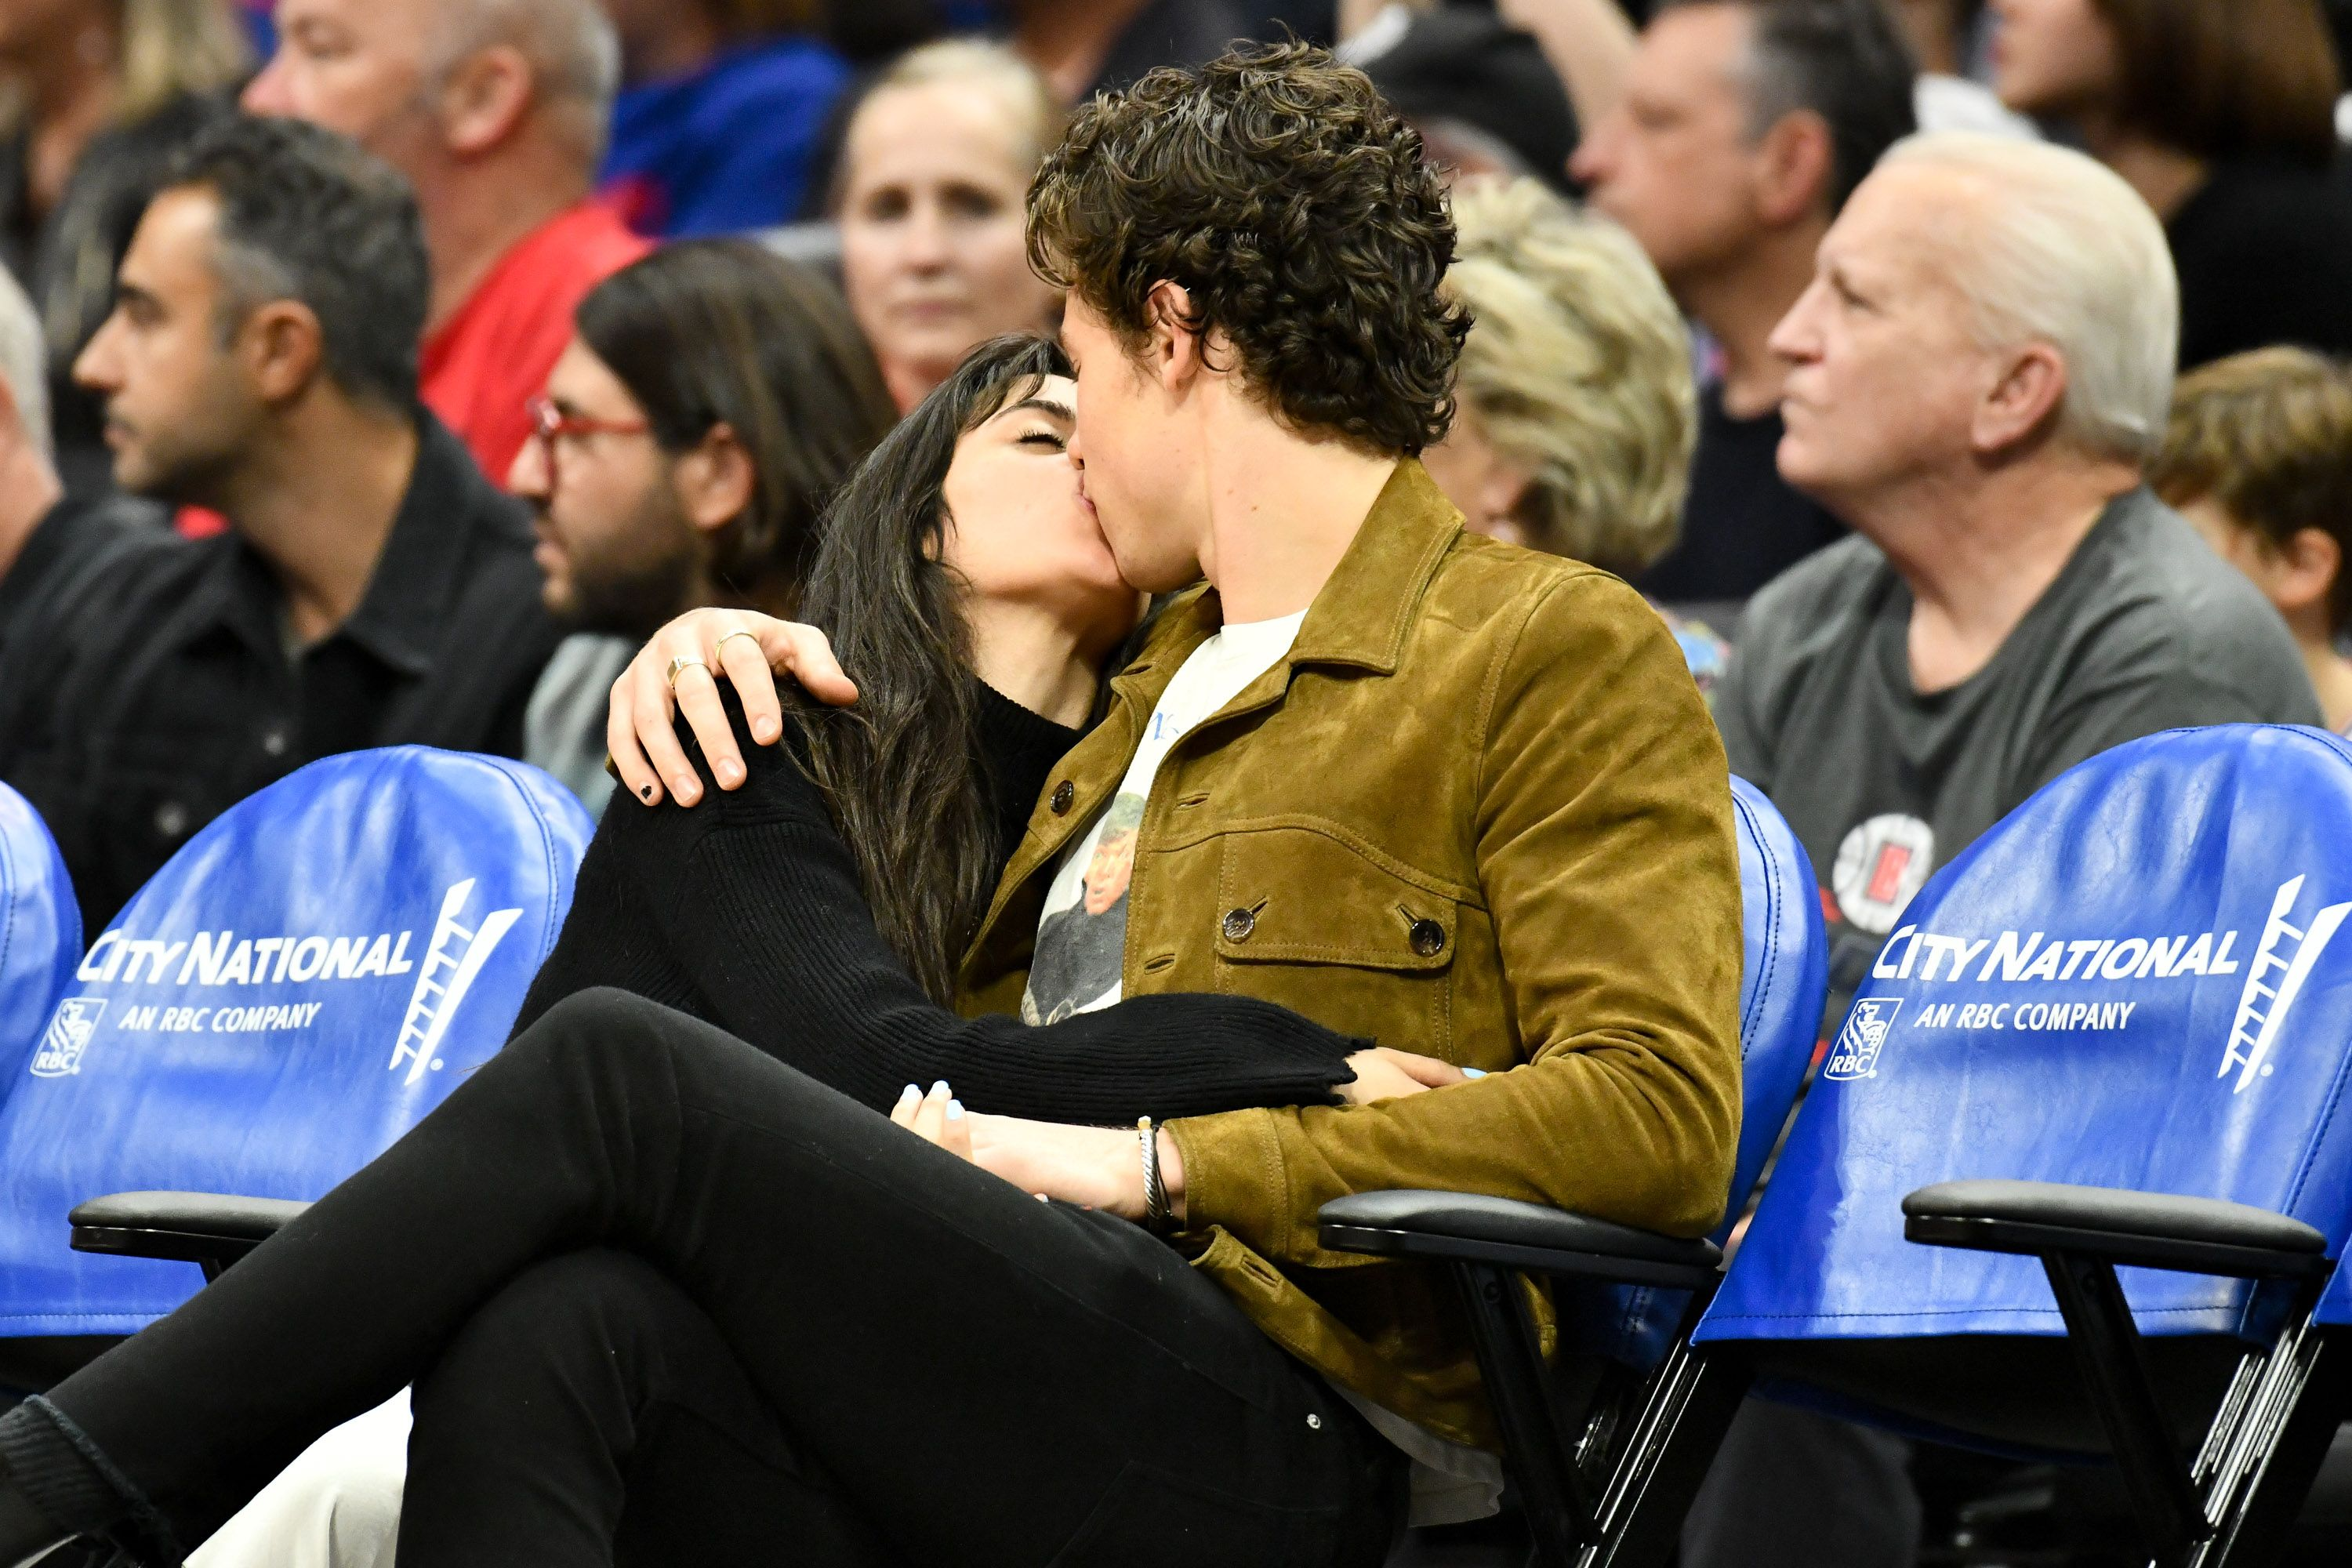 Shawn Mendes and Camila Cabello Are Now Making Out and Showing All the PDA at NBA Games